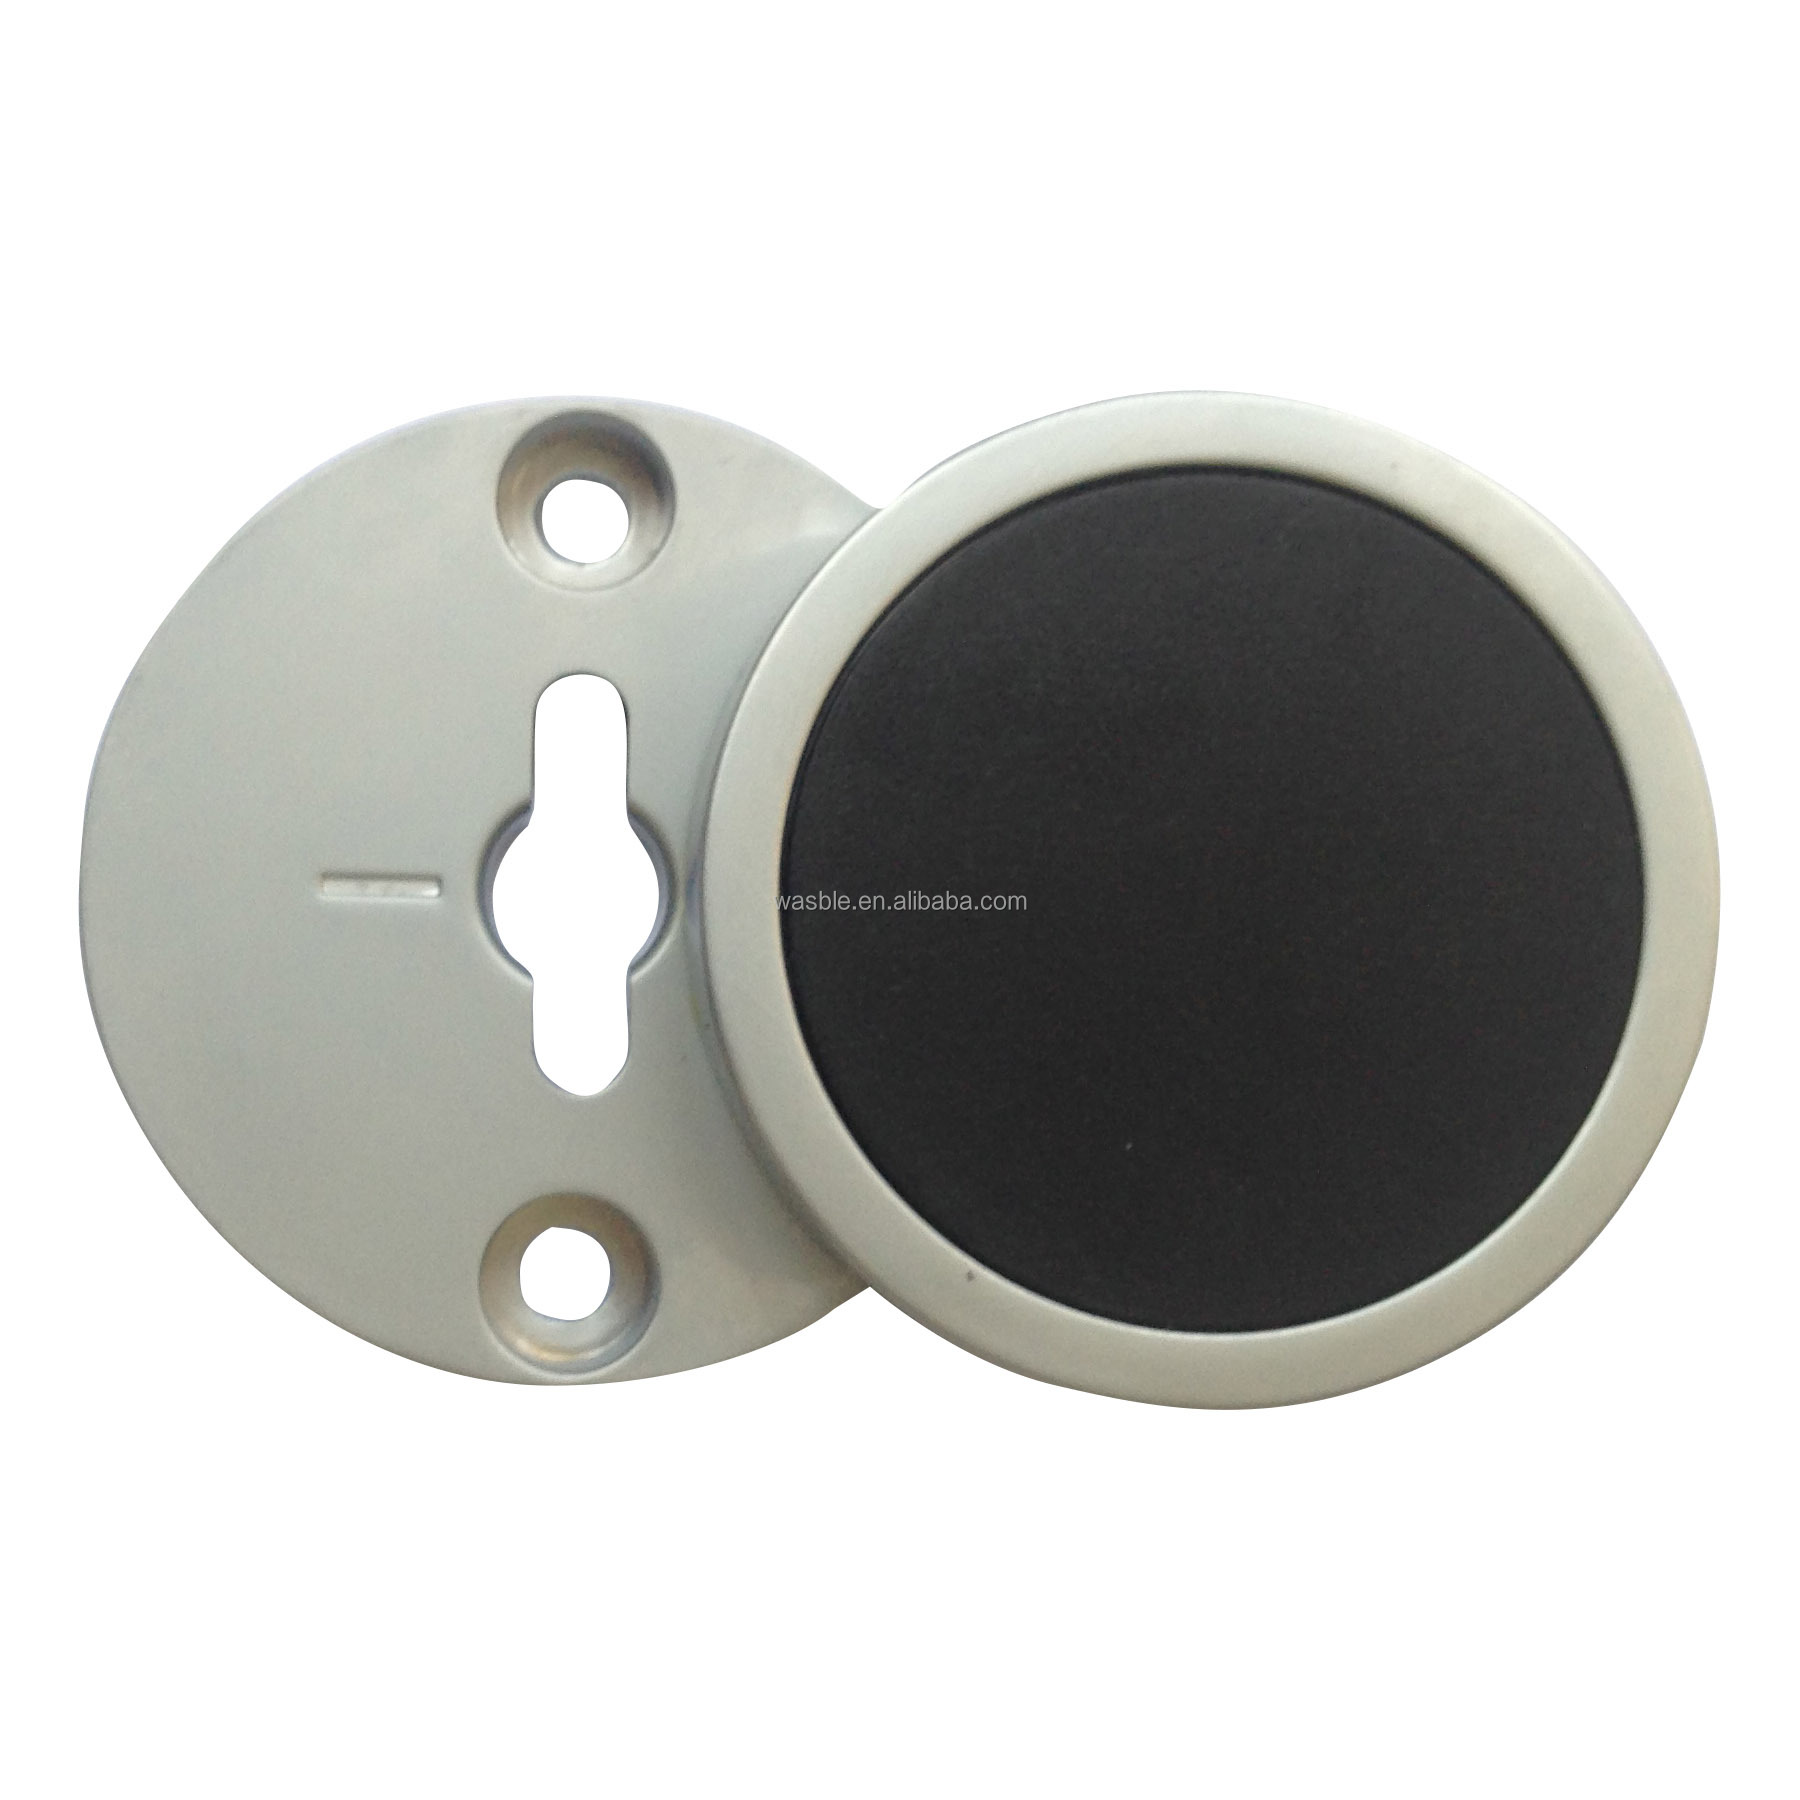 safe key escutcheon